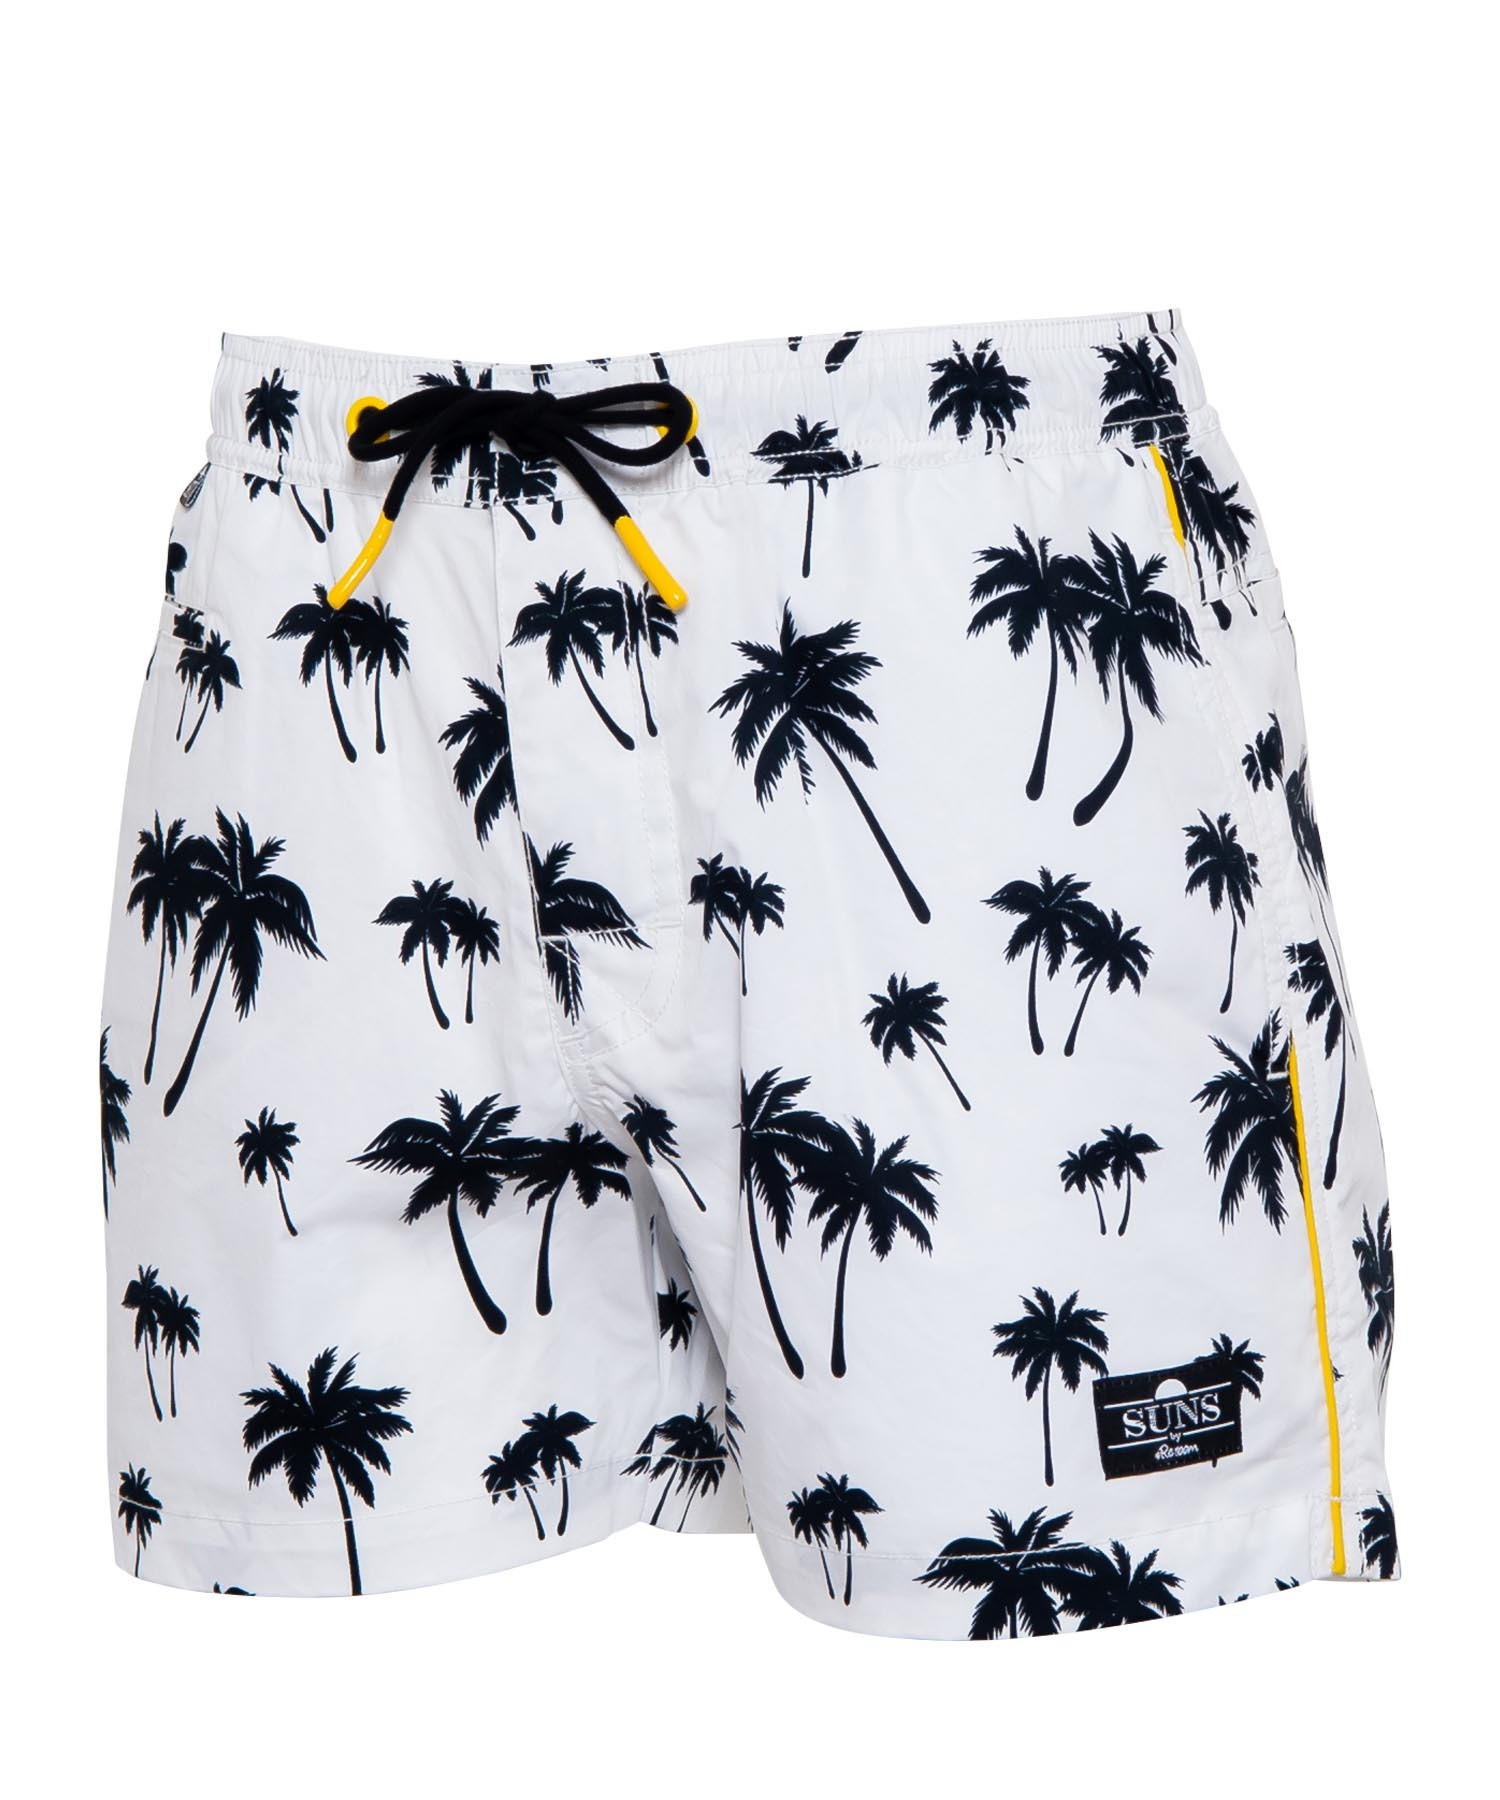 SUNS PALM TREE SIDE LINE SWIM SHORTS[RSW031]